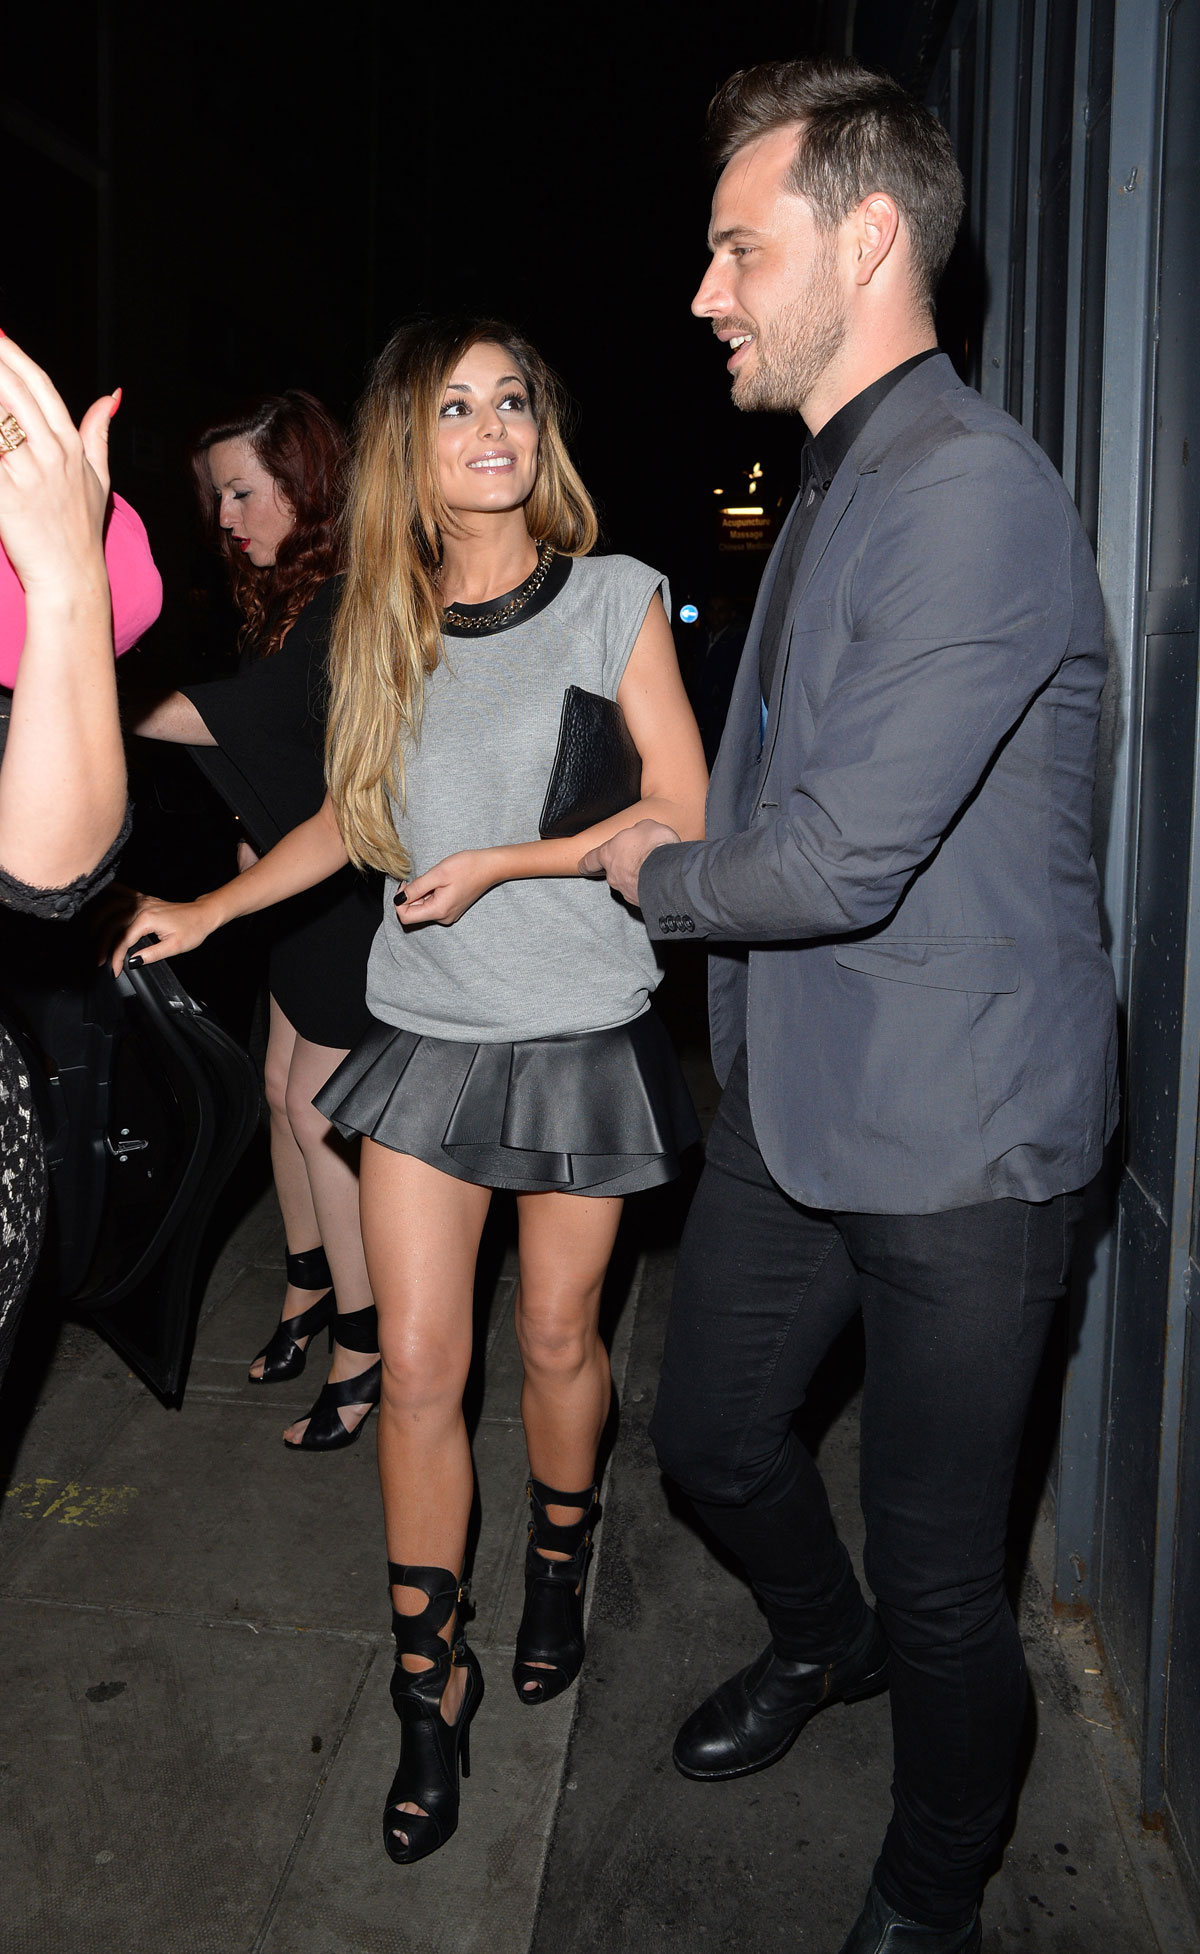 Cheryl Cole at The Box club in Soho